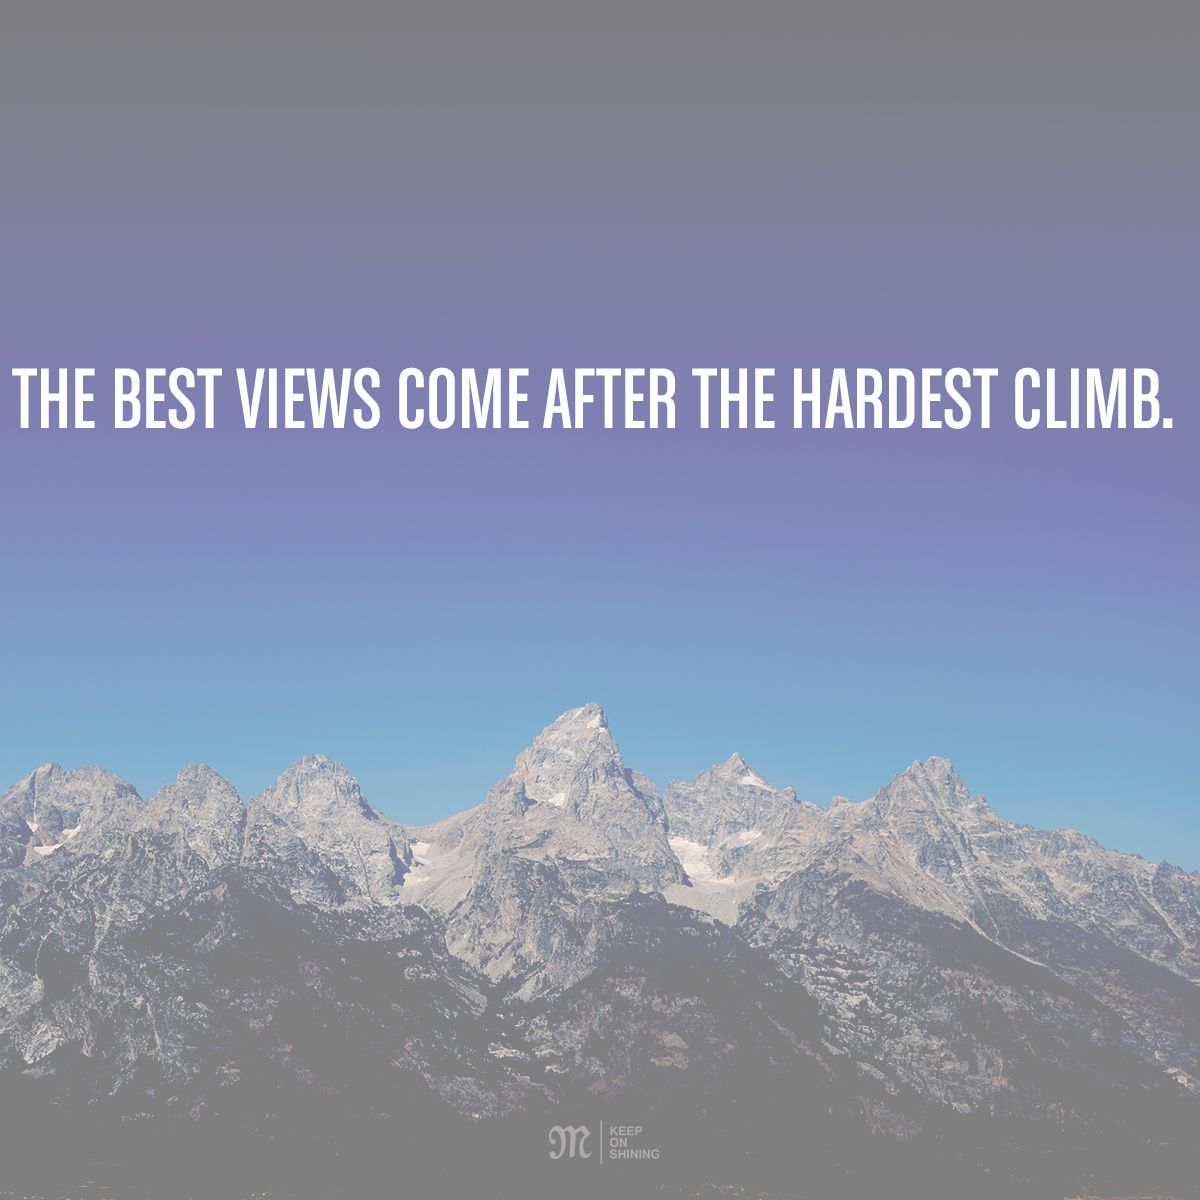 The Best Views Come After The Hardest Climb Quote Missmejeans Climbing Quotes Mountain Climbing Quotes Inspirational Quotes